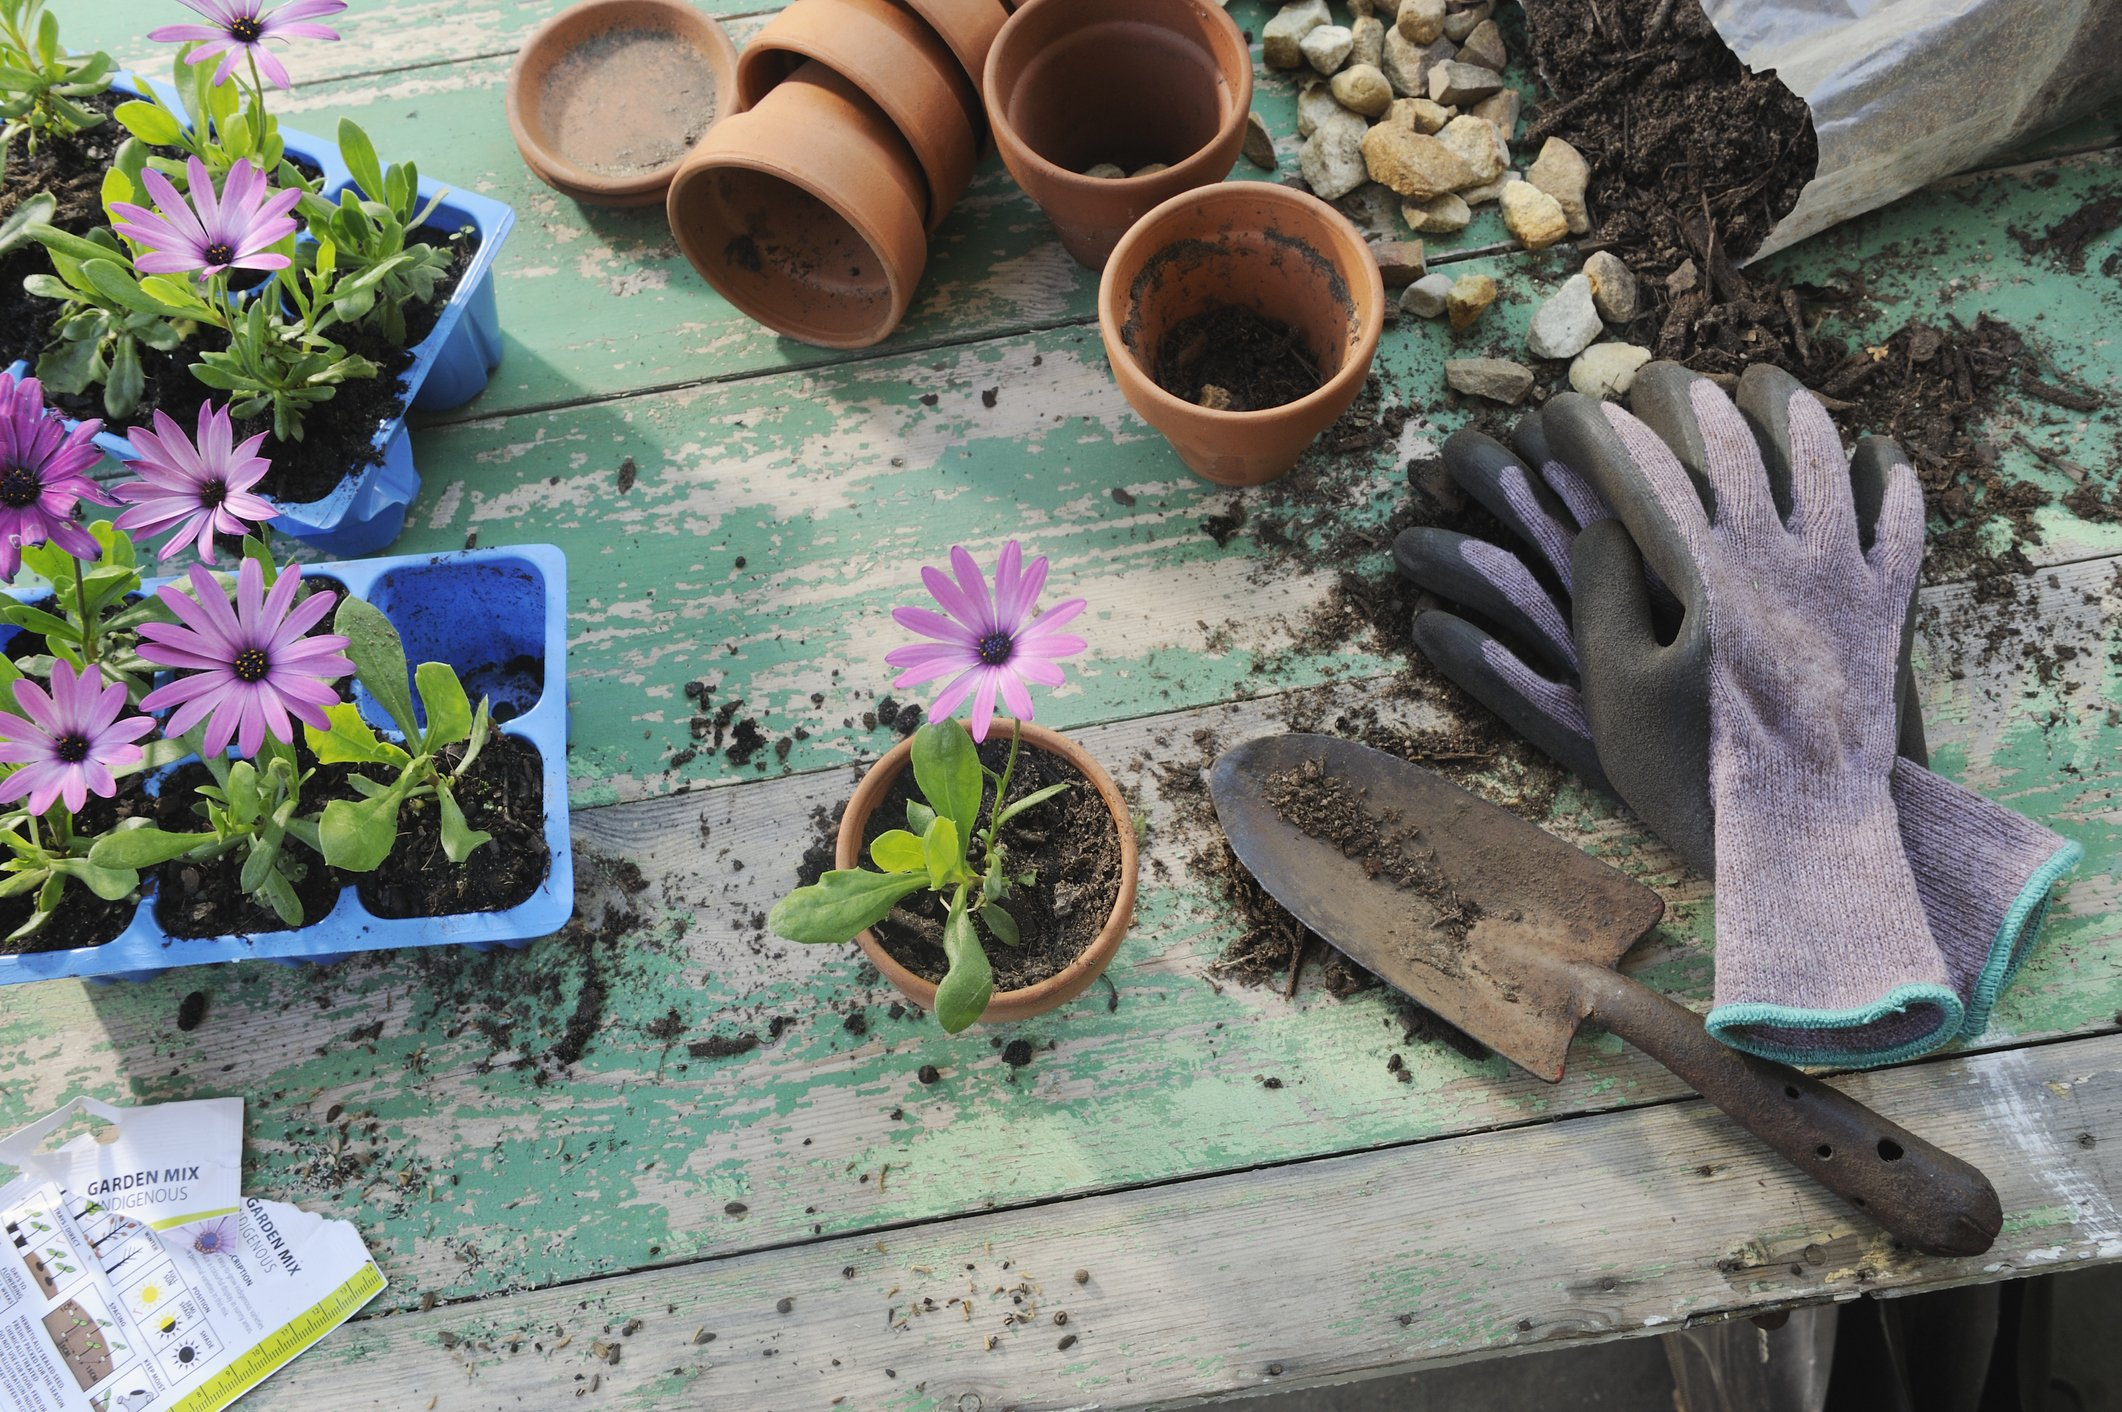 Craft persons workspace (gardening)  | Photo: Getty Images